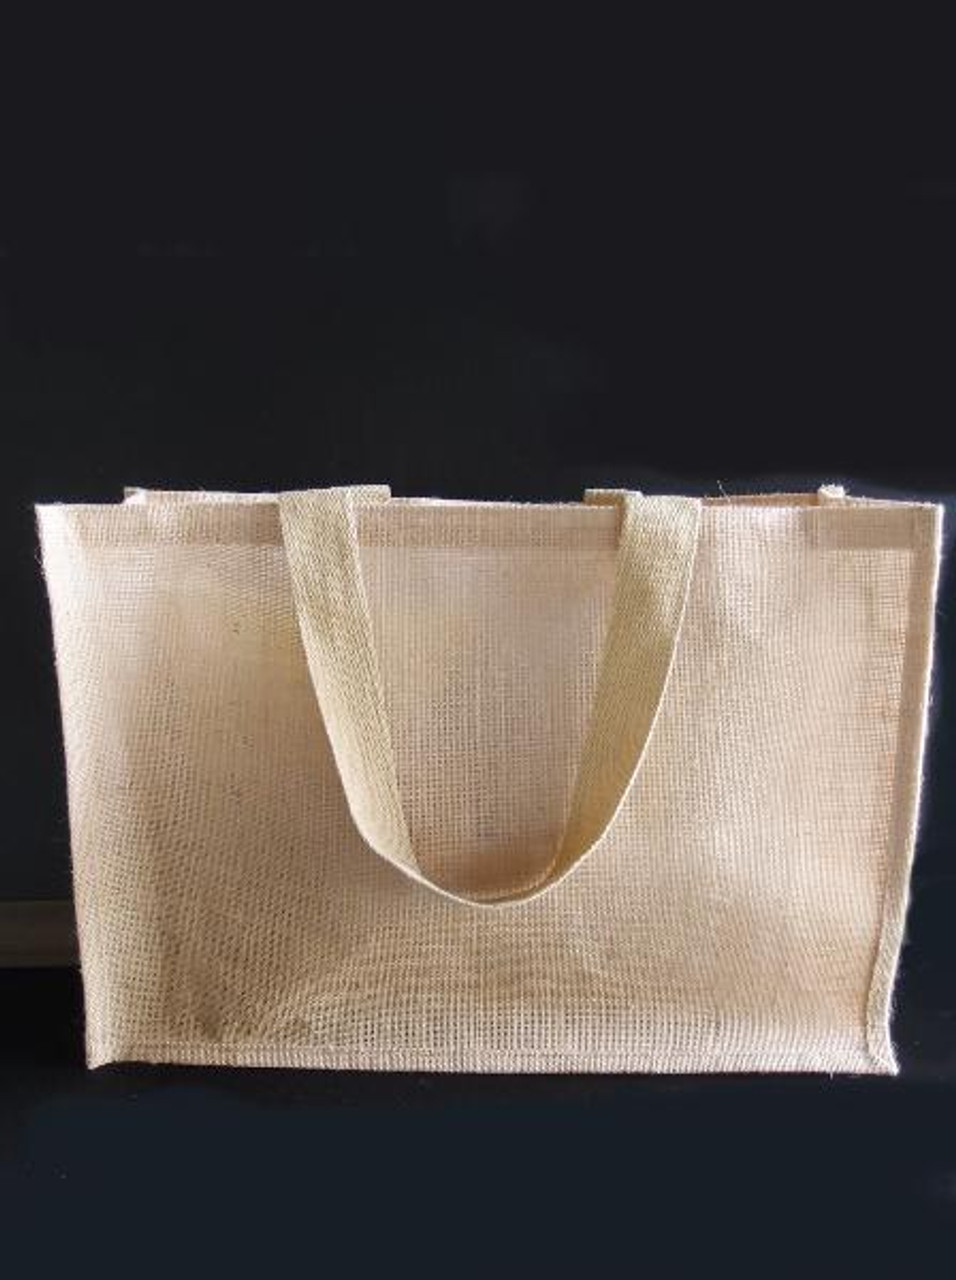 Wholesale Burlap Tote Bags, Jute Tote with Strap Handles 20 x 13.5 x 6 inches  (B879-21) | Packaging Decor